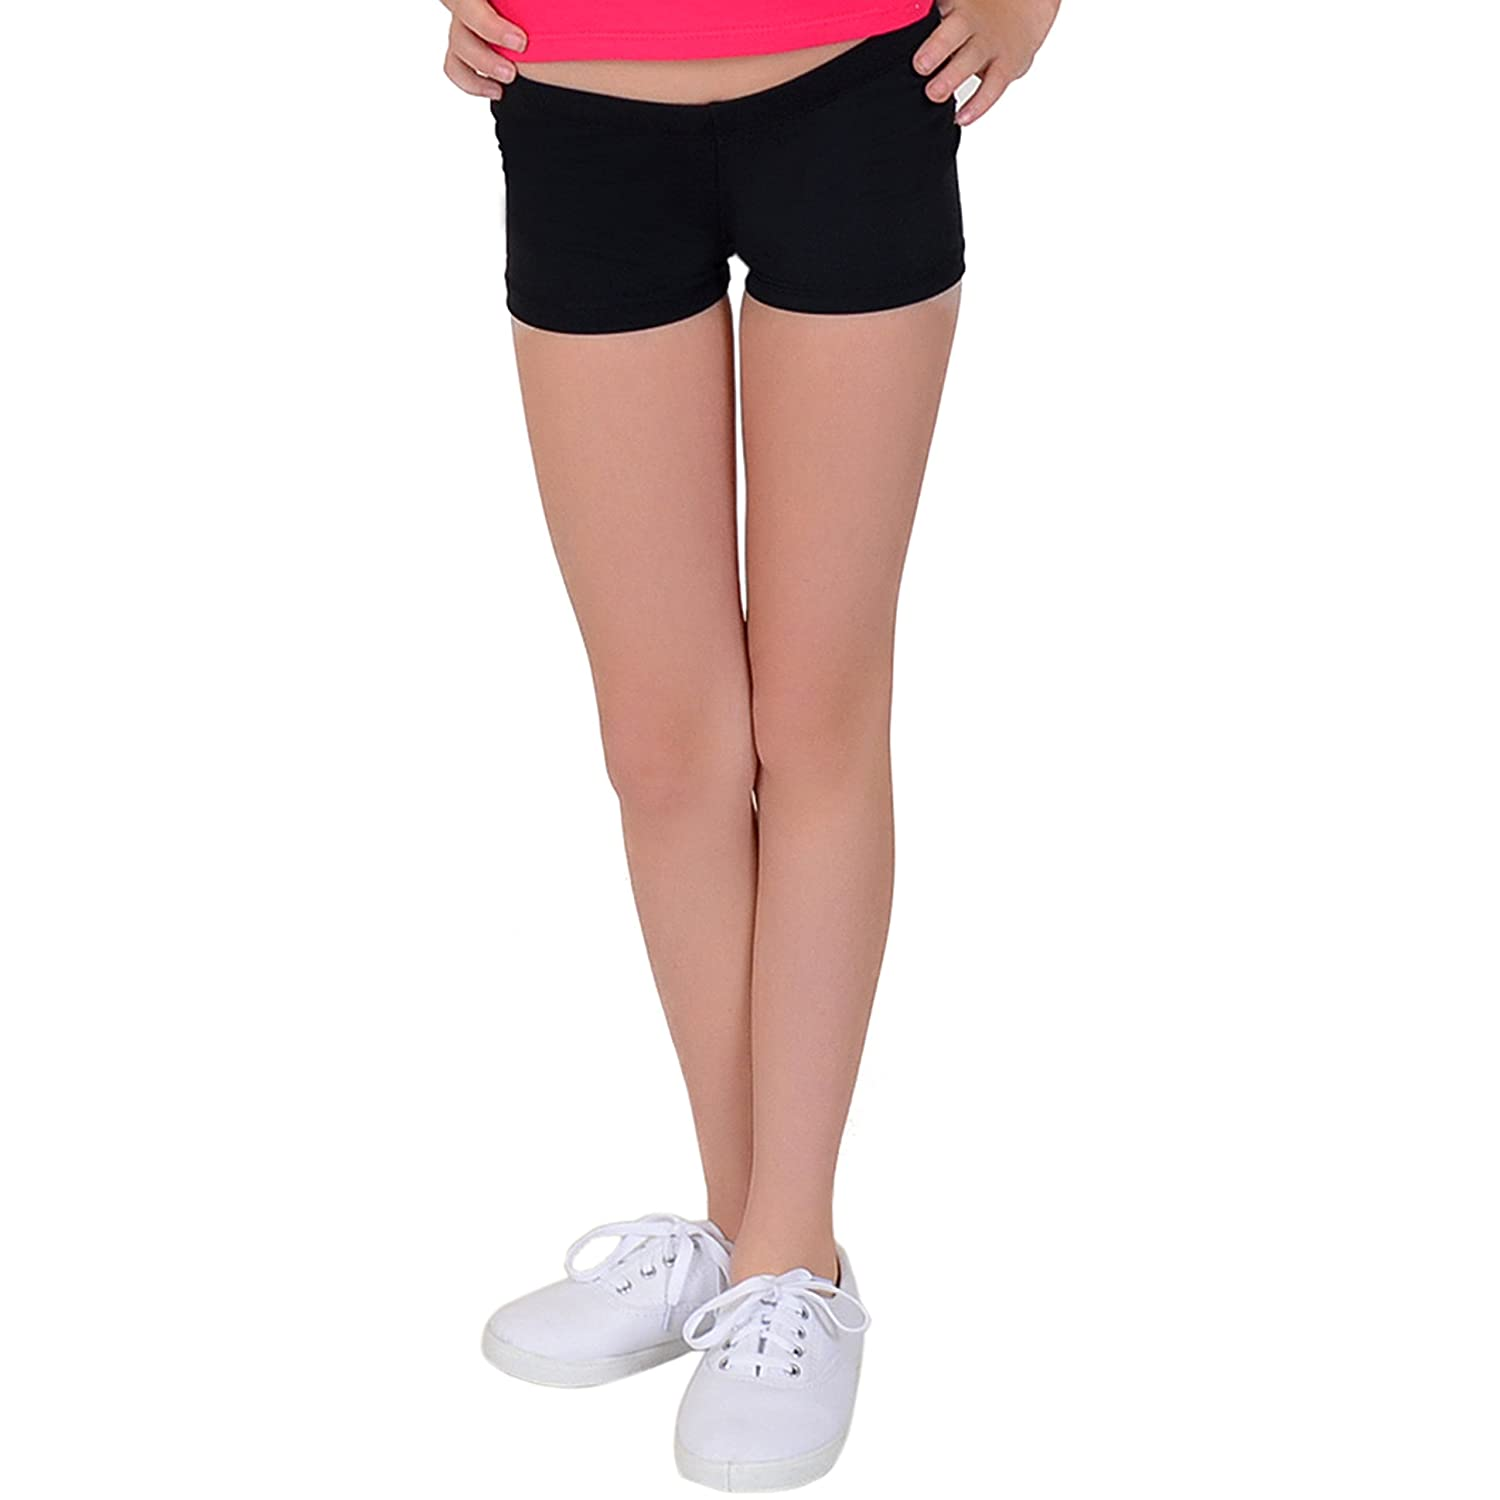 Stretch is Comfort Girl's Teamwear COTTON Stretch Booty Shorts S3050C-$P